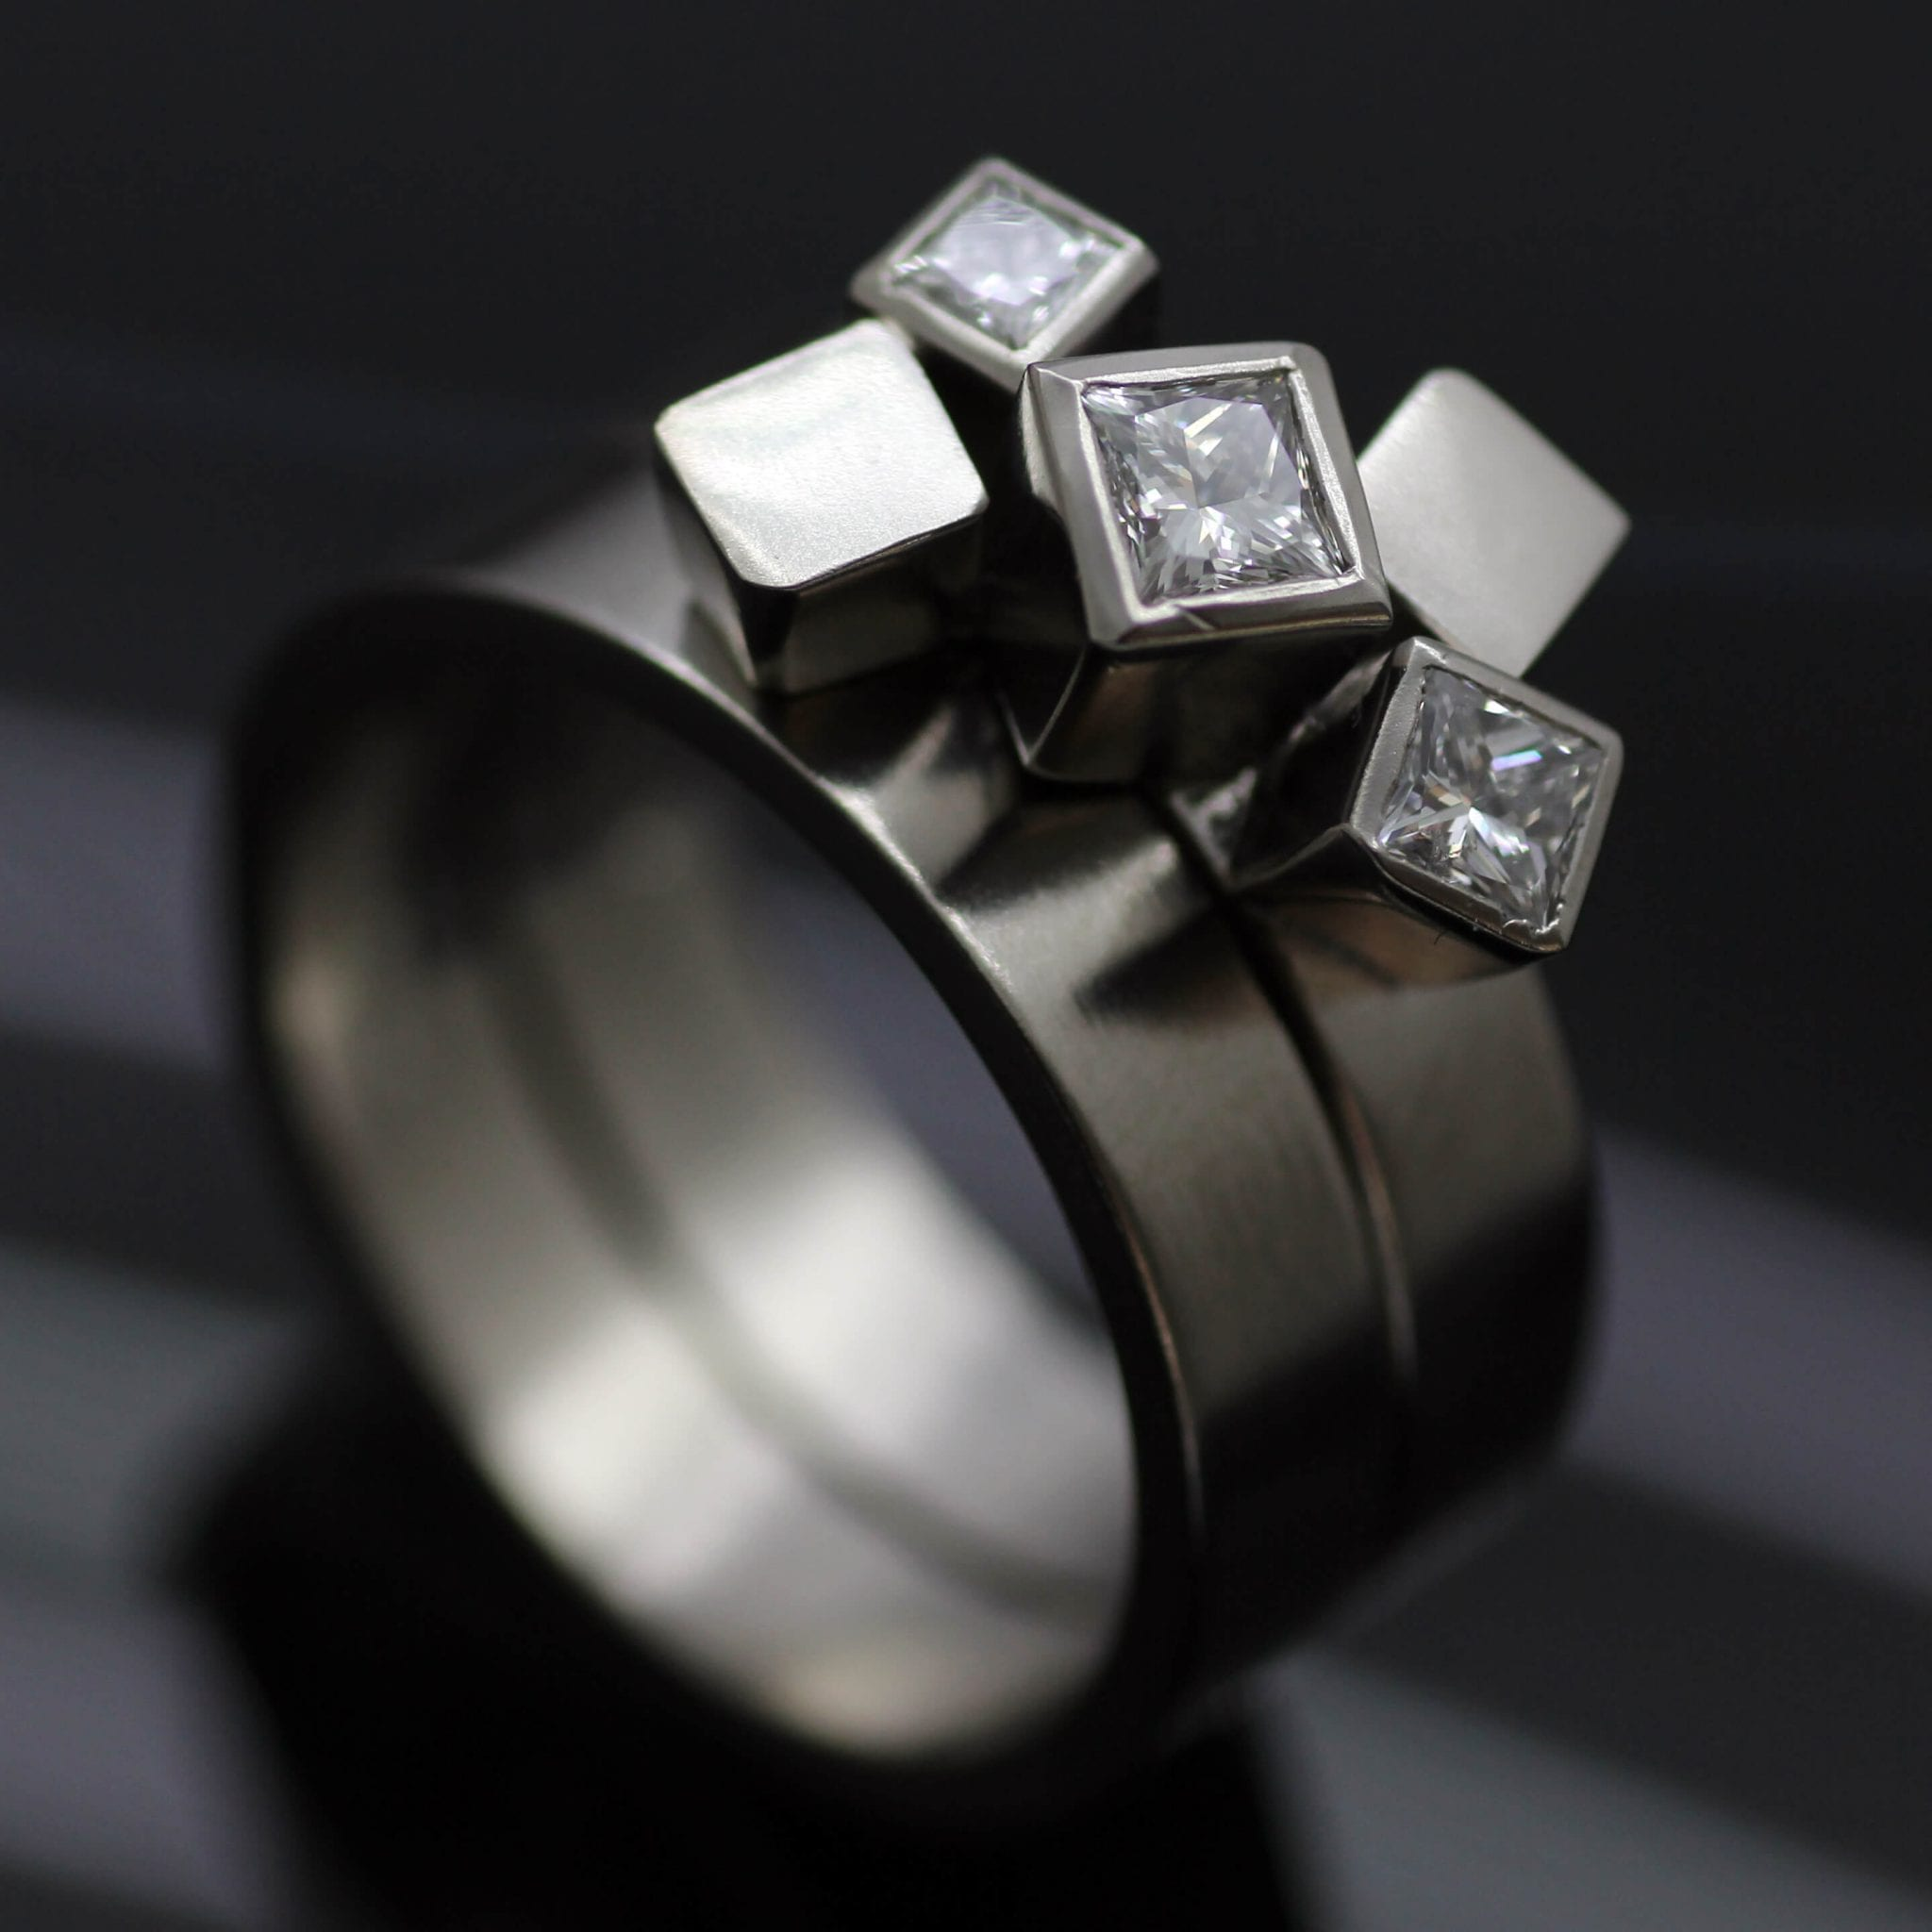 Contemporary Palladium and Diamonds stacking engagement and wedding ring design